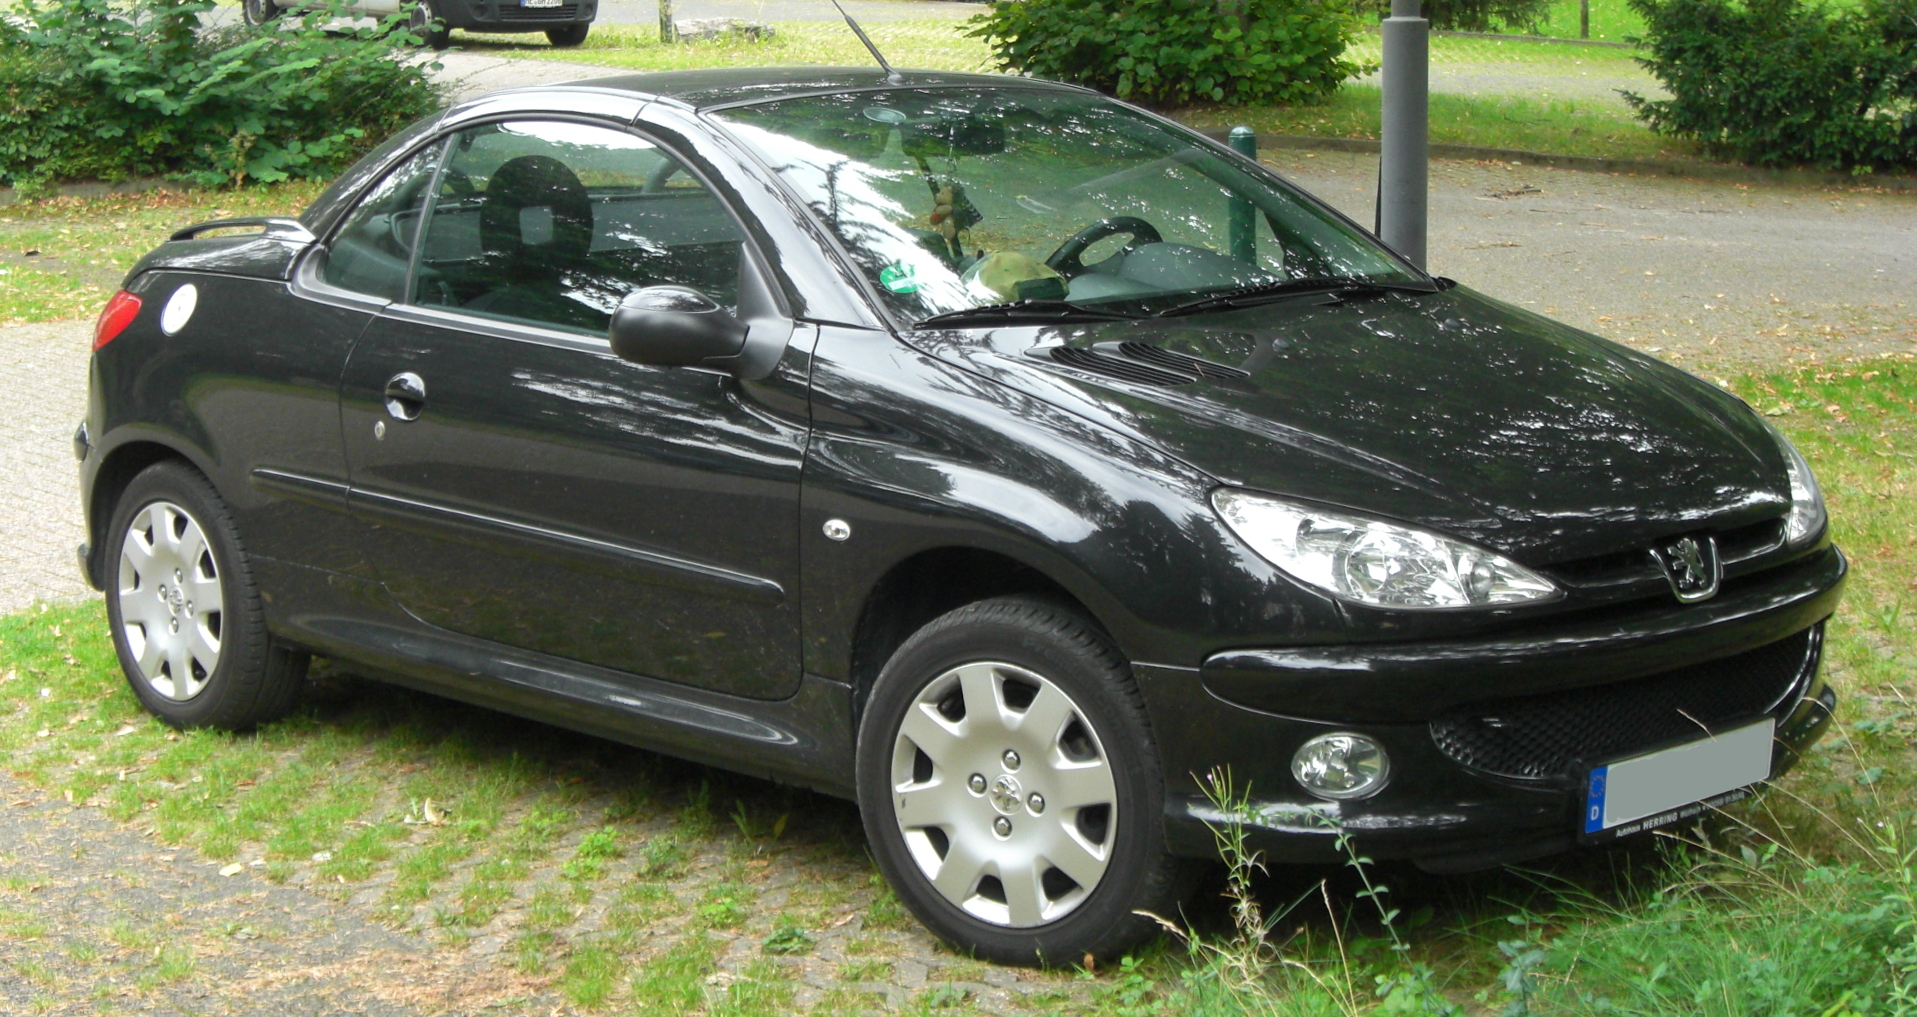 file peugeot 206 cc facelift wikimedia commons. Black Bedroom Furniture Sets. Home Design Ideas